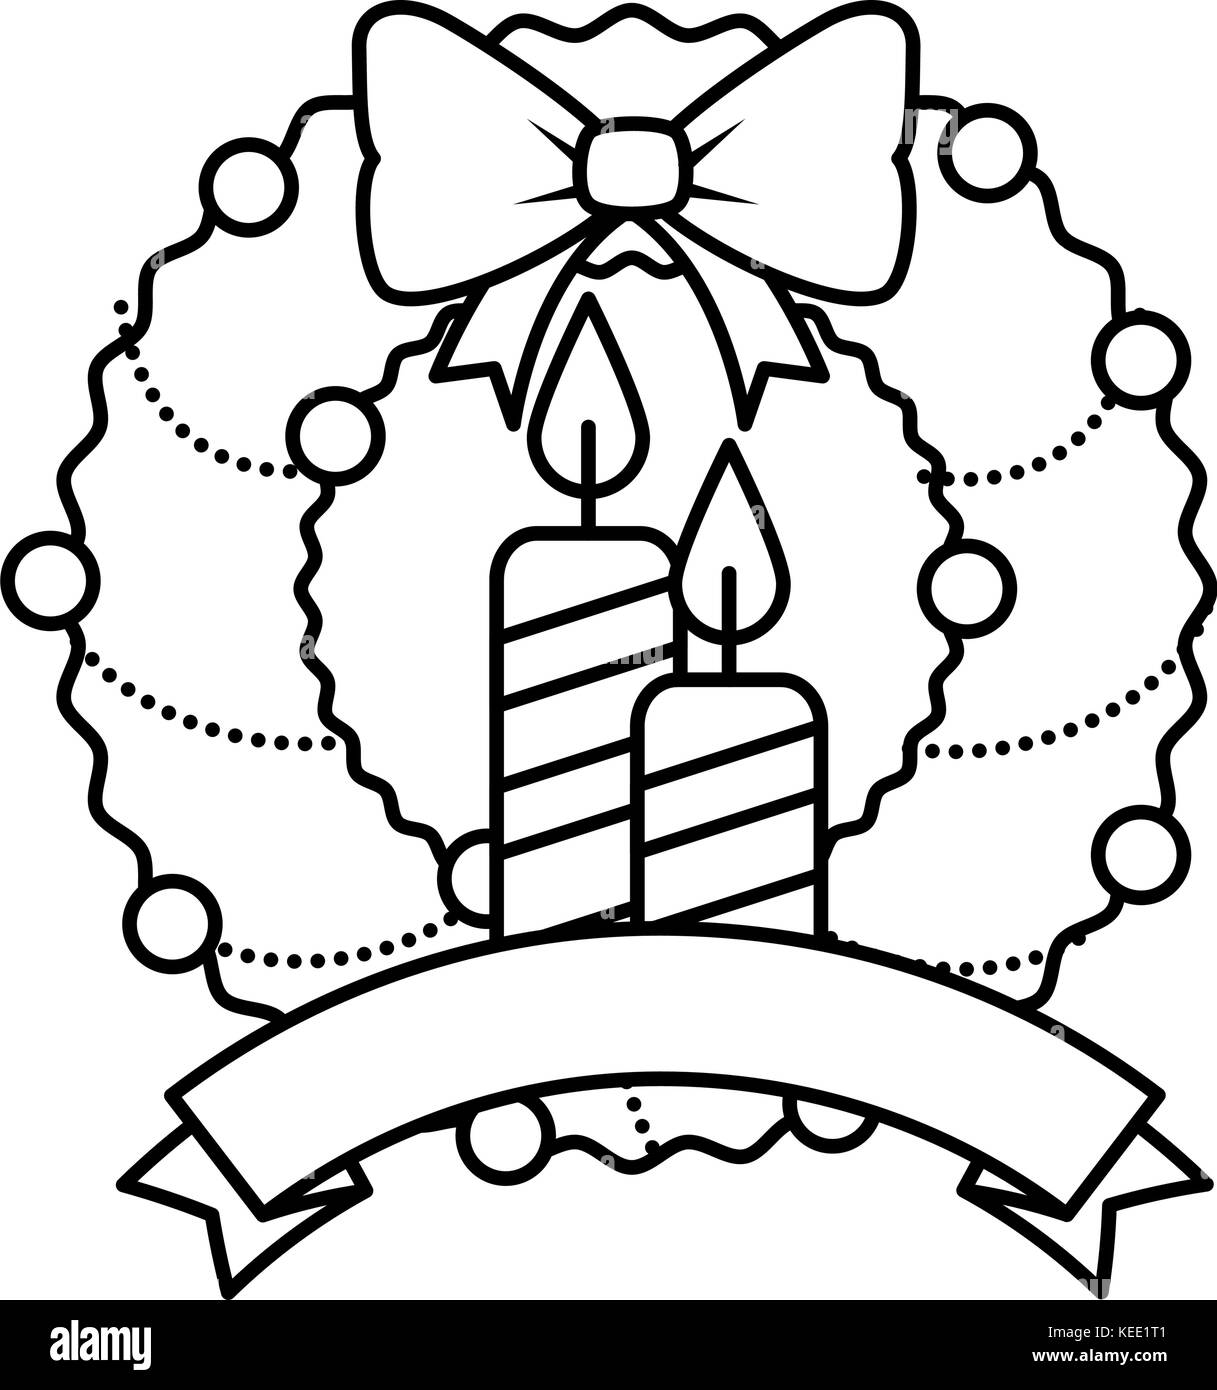 Merry Christmas Wreath Crown With Candles Vector Illustration Design